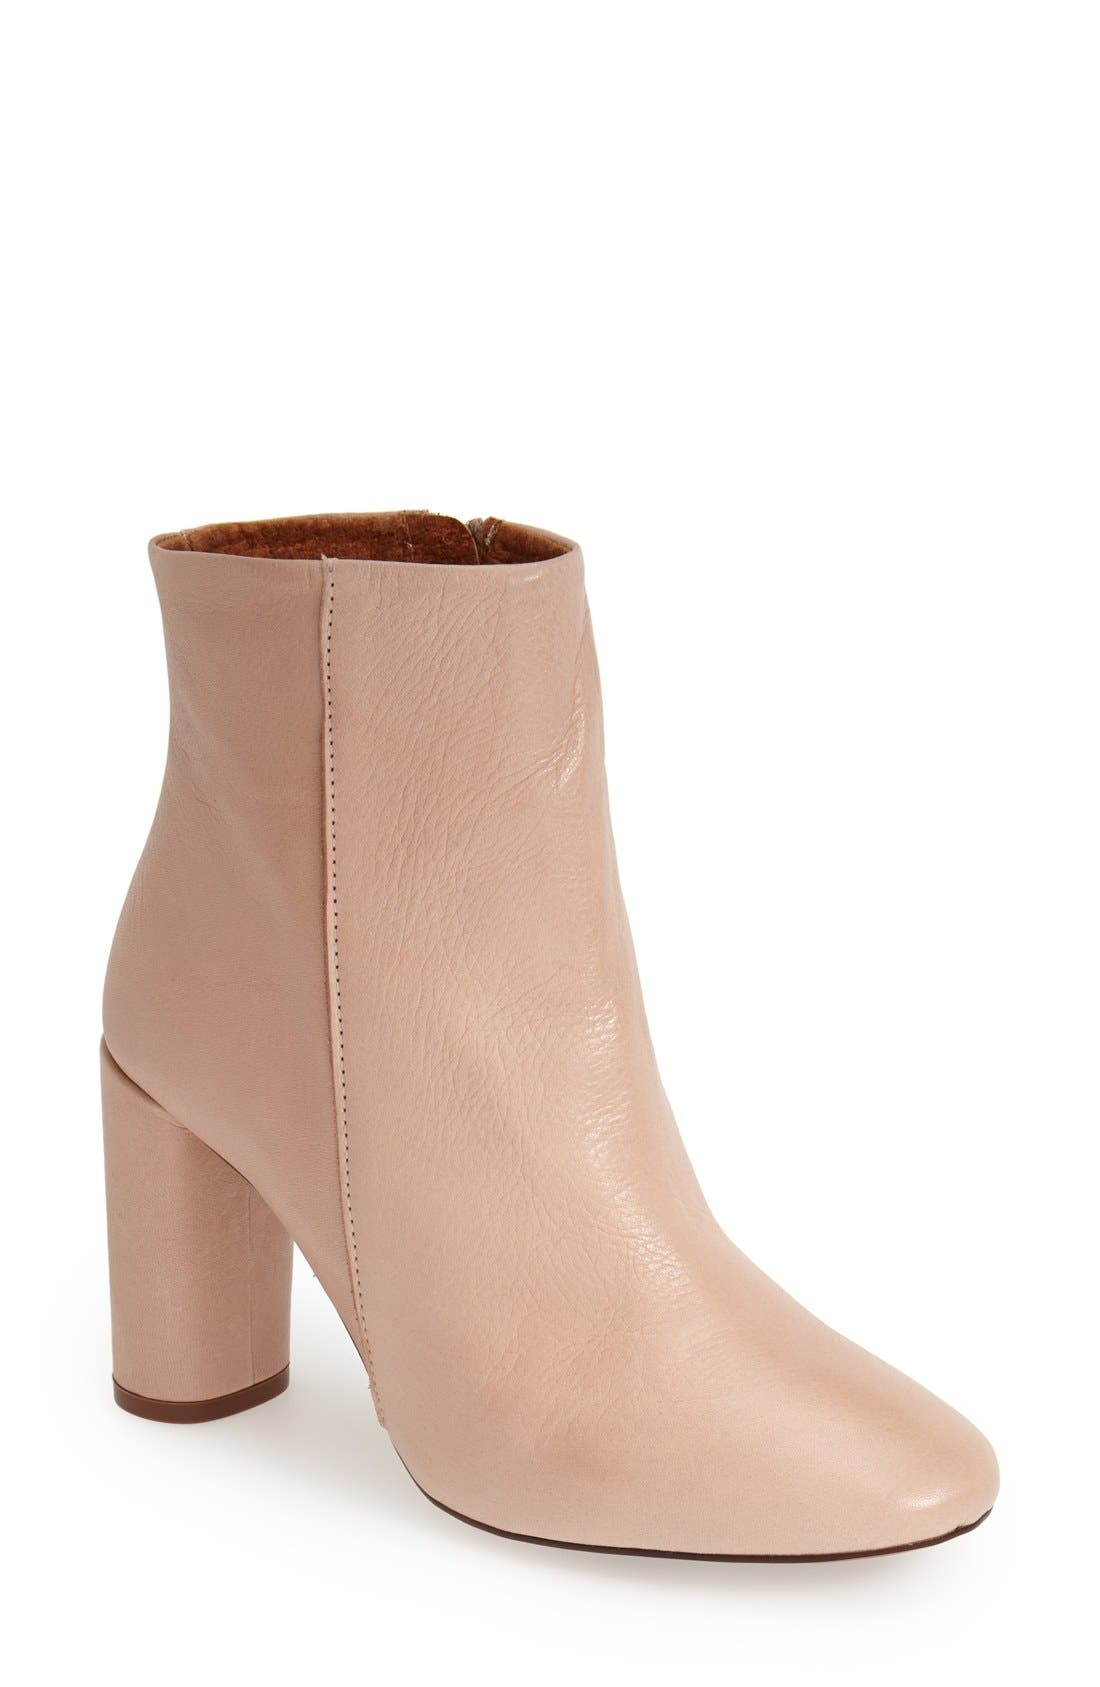 Main Image - Topshop 'Magnum' Leather Ankle Boot (Women)